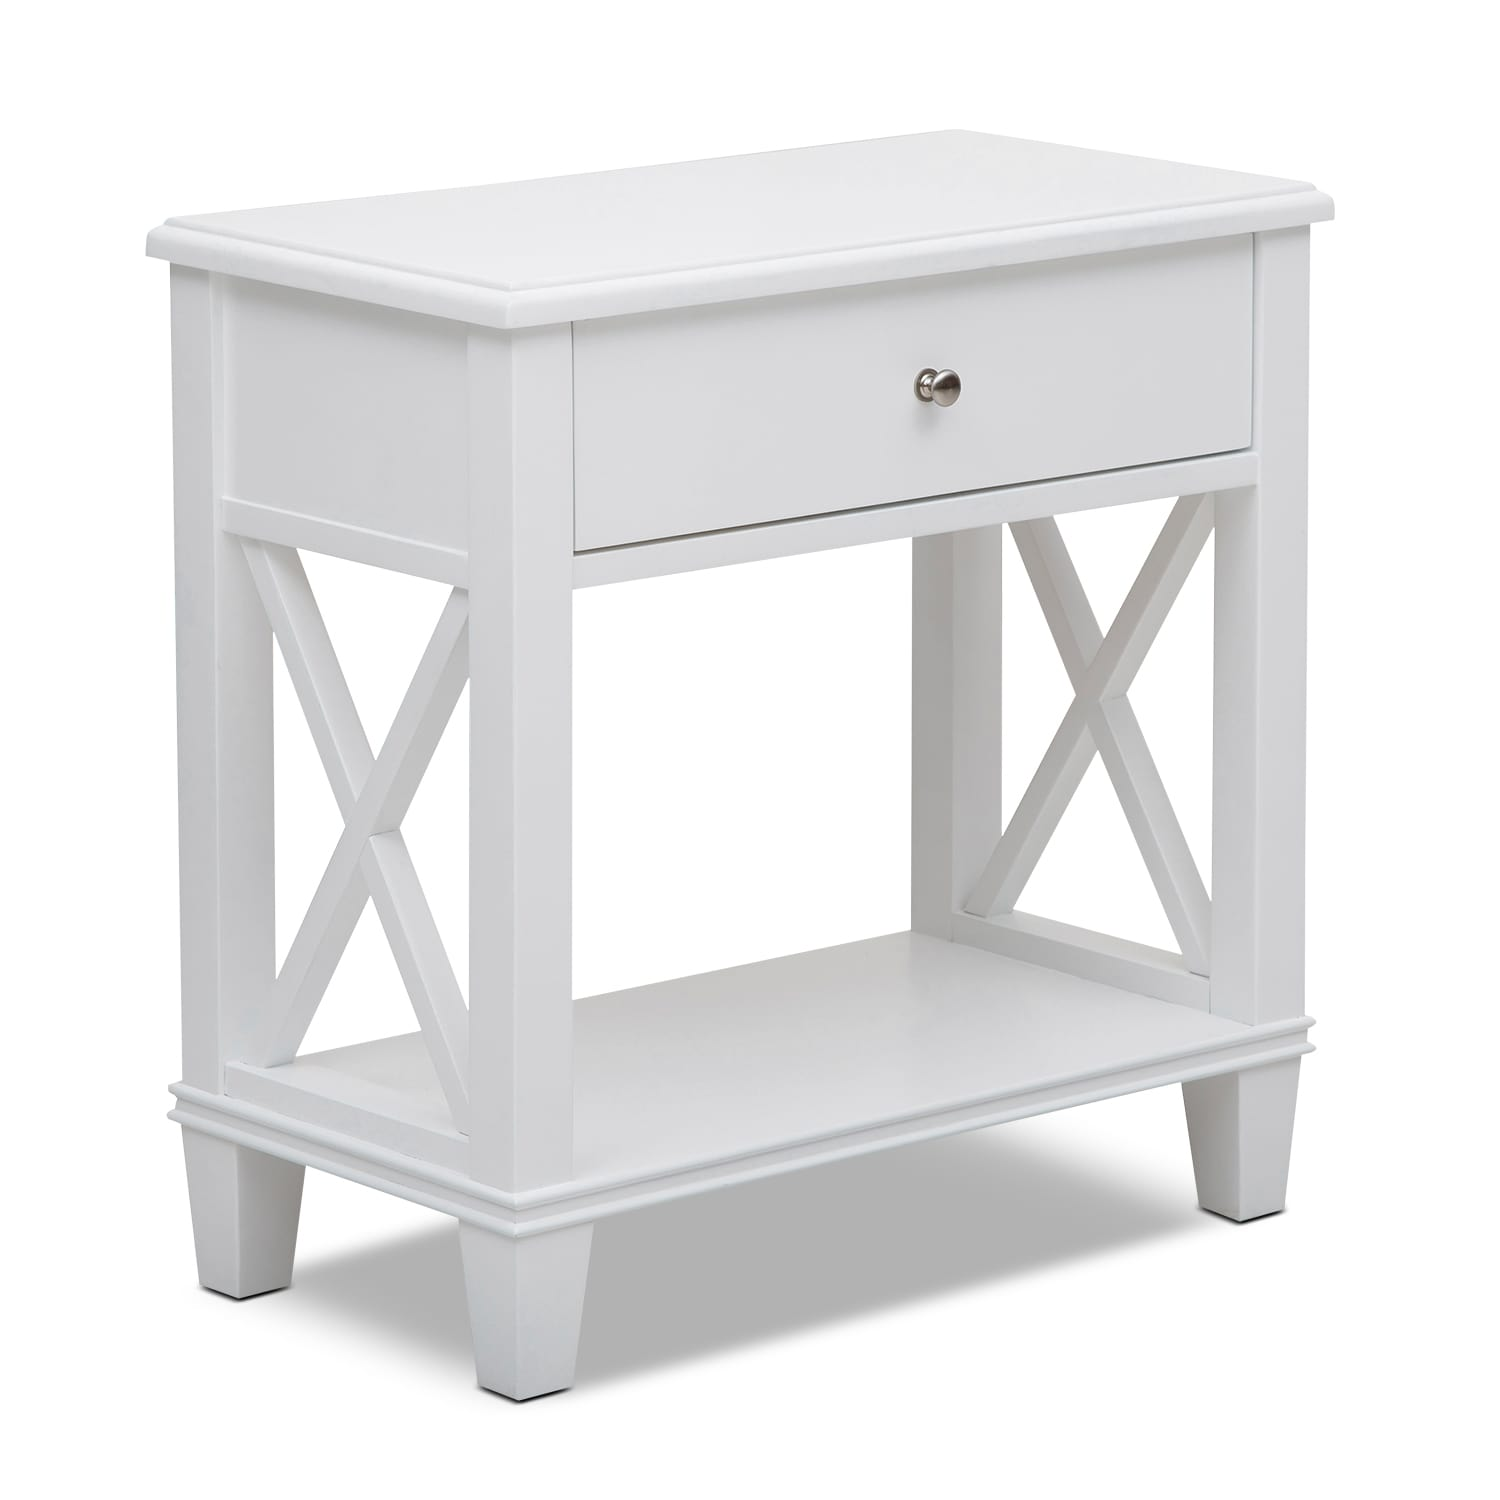 Liat Accent Table - White